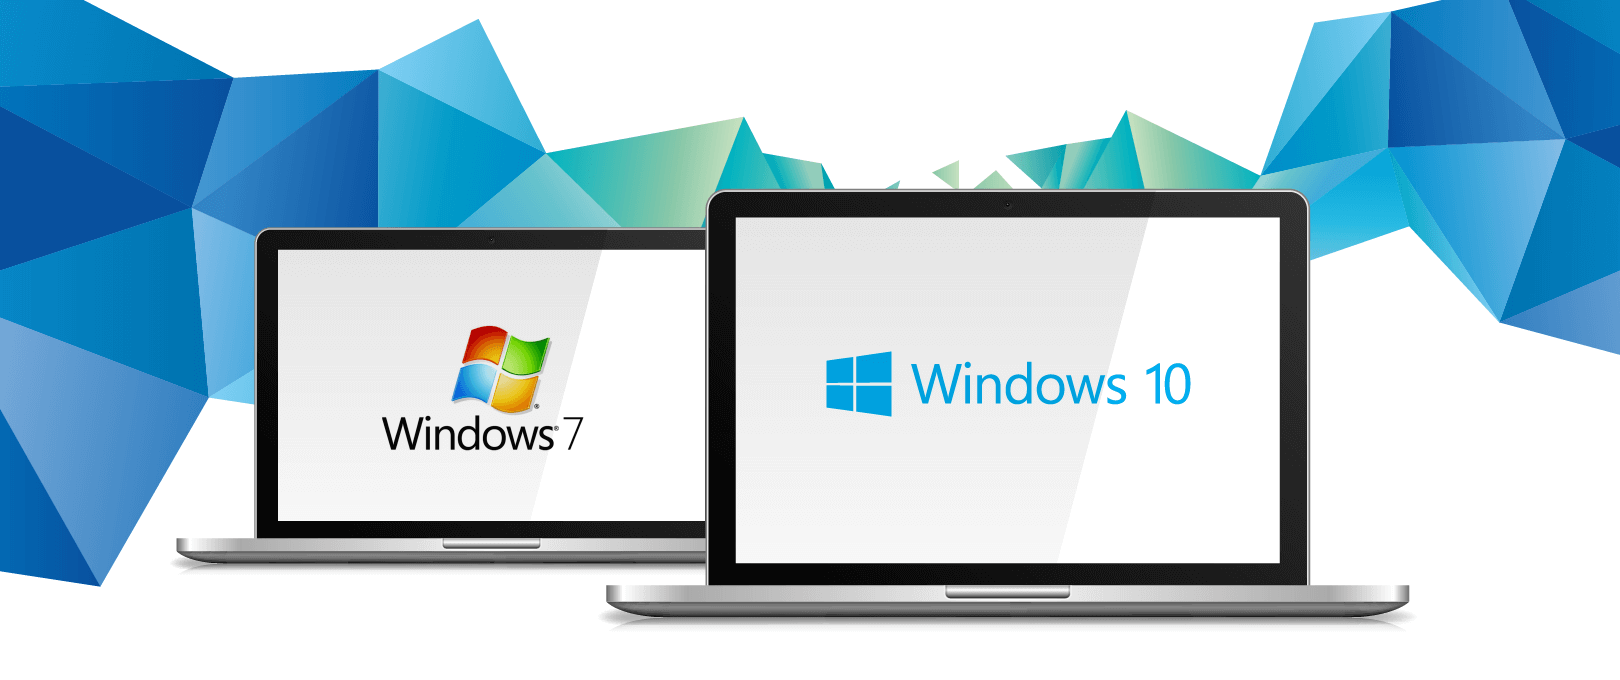 Windows 7 Windows 10 Transition Banner